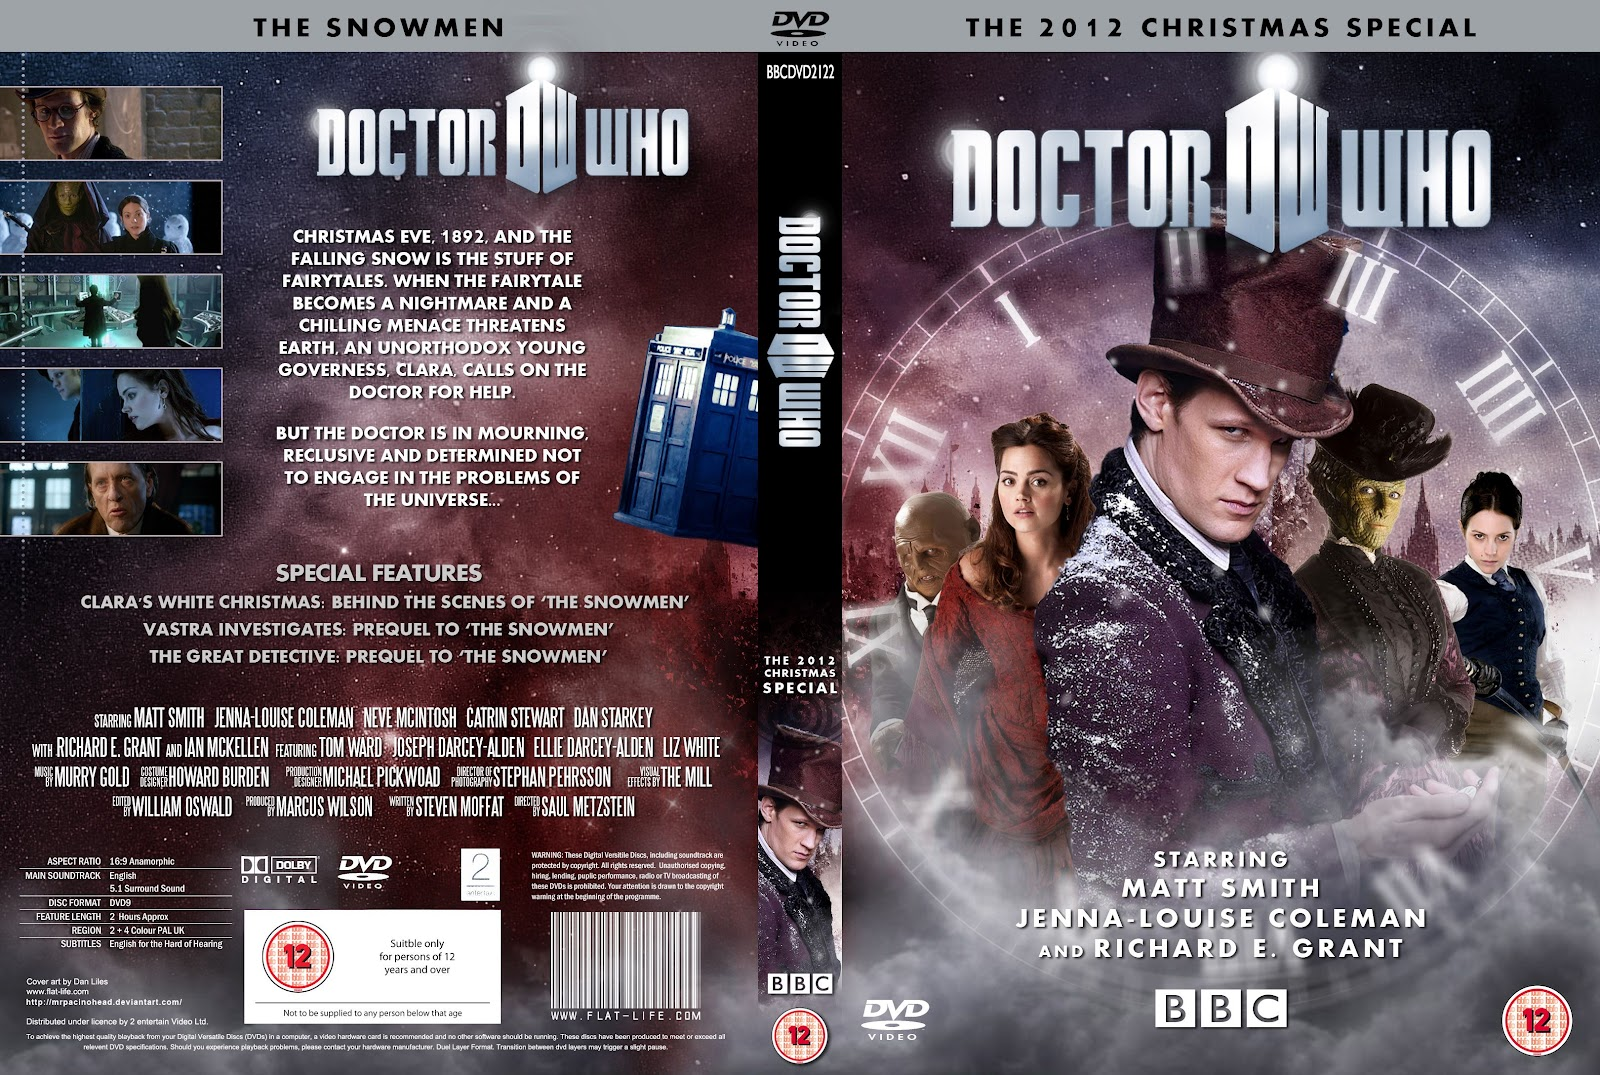 Capa DVD Doctor Who The Snowman